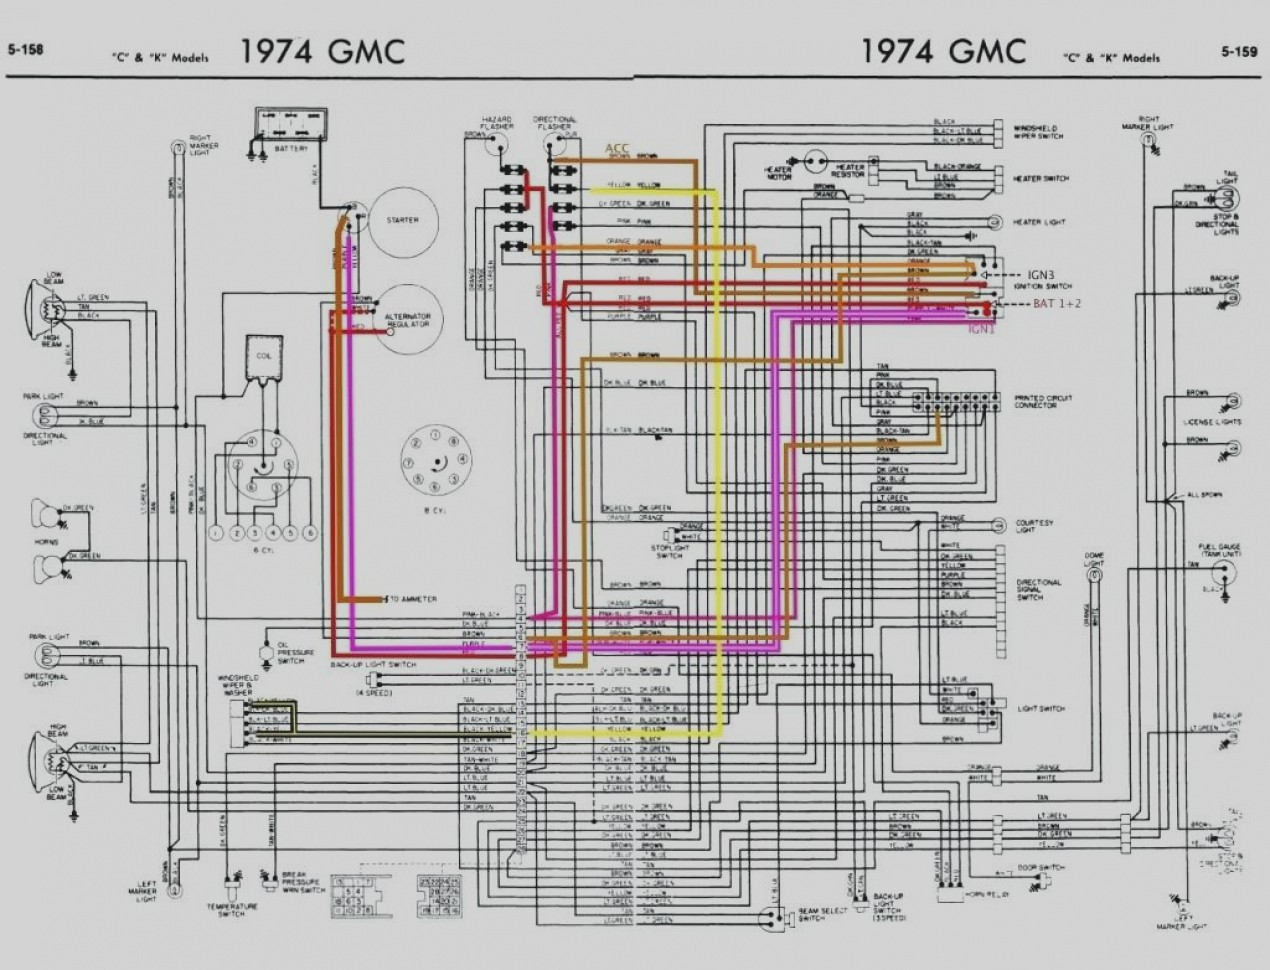 79 camaro wiring diagram auto electrical wiring diagram u2022 rh focusnews co 2002 Camaro Wiring Diagram 1973 Camaro Wiring Diagram